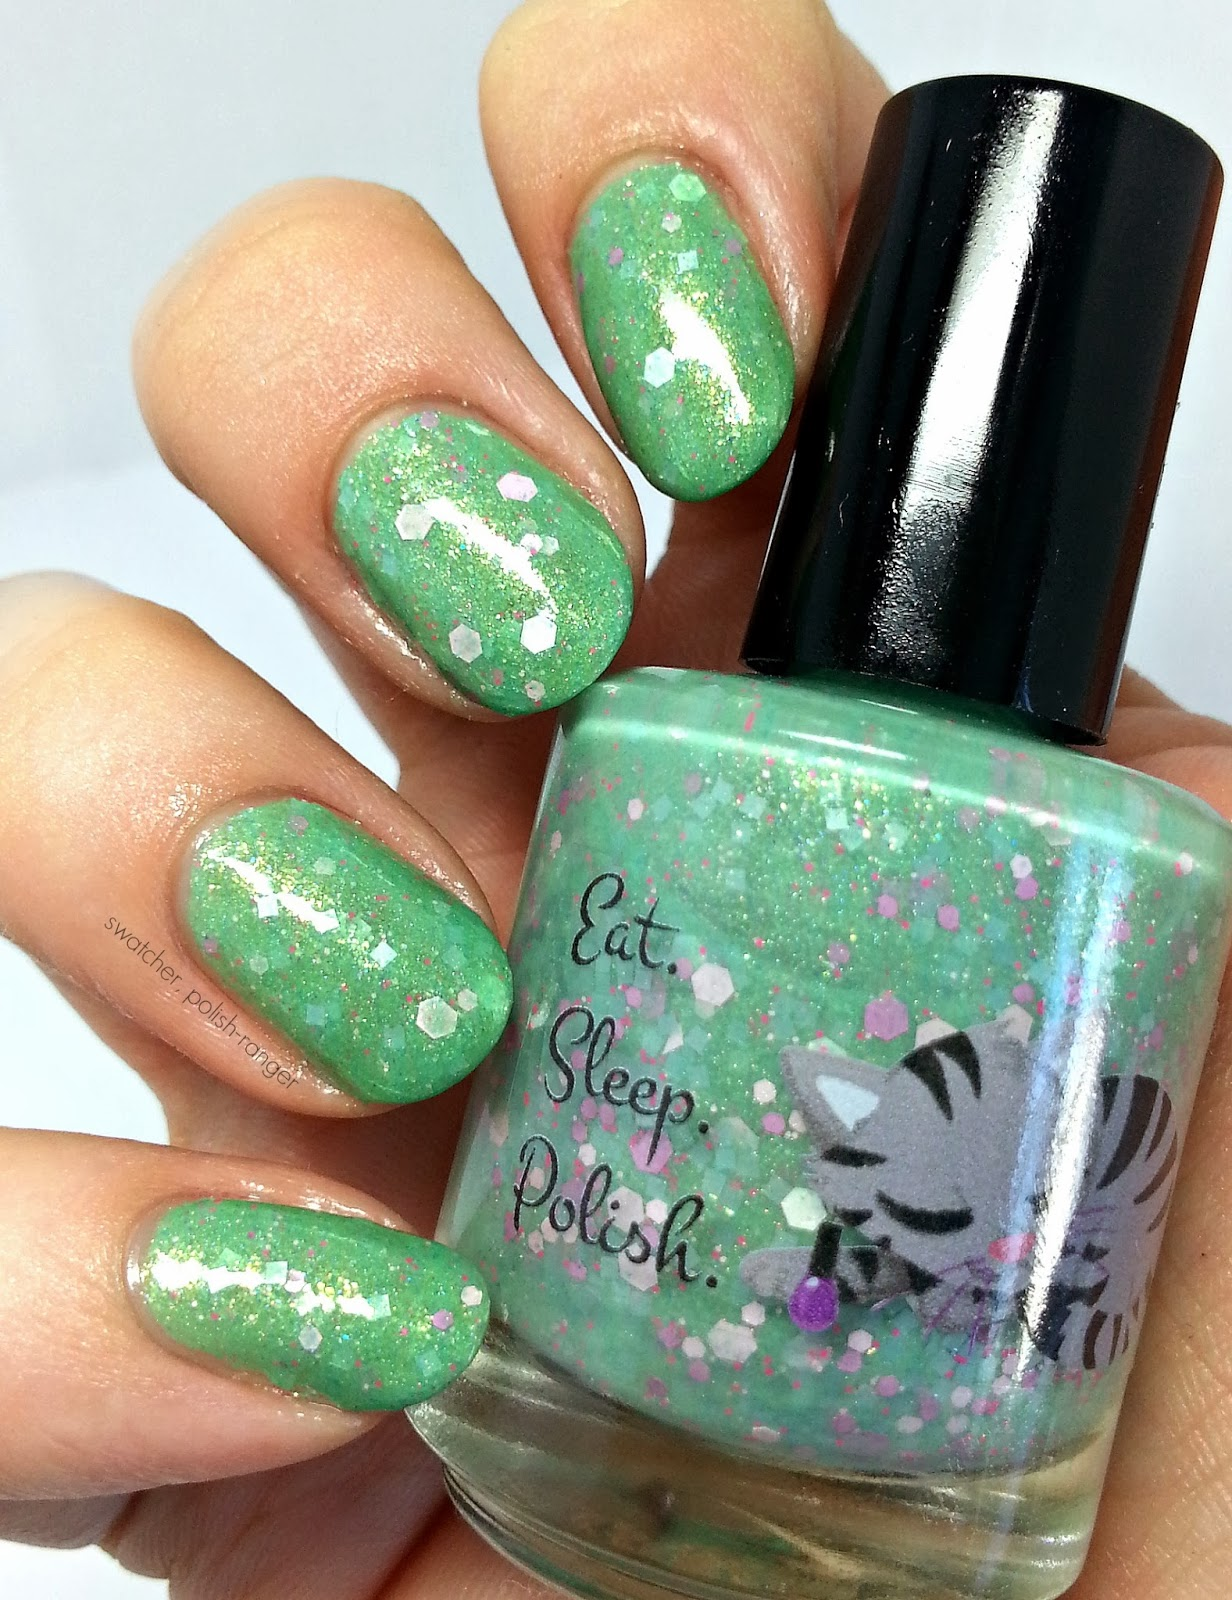 Eat Sleep Polish Grasshoppa swatch